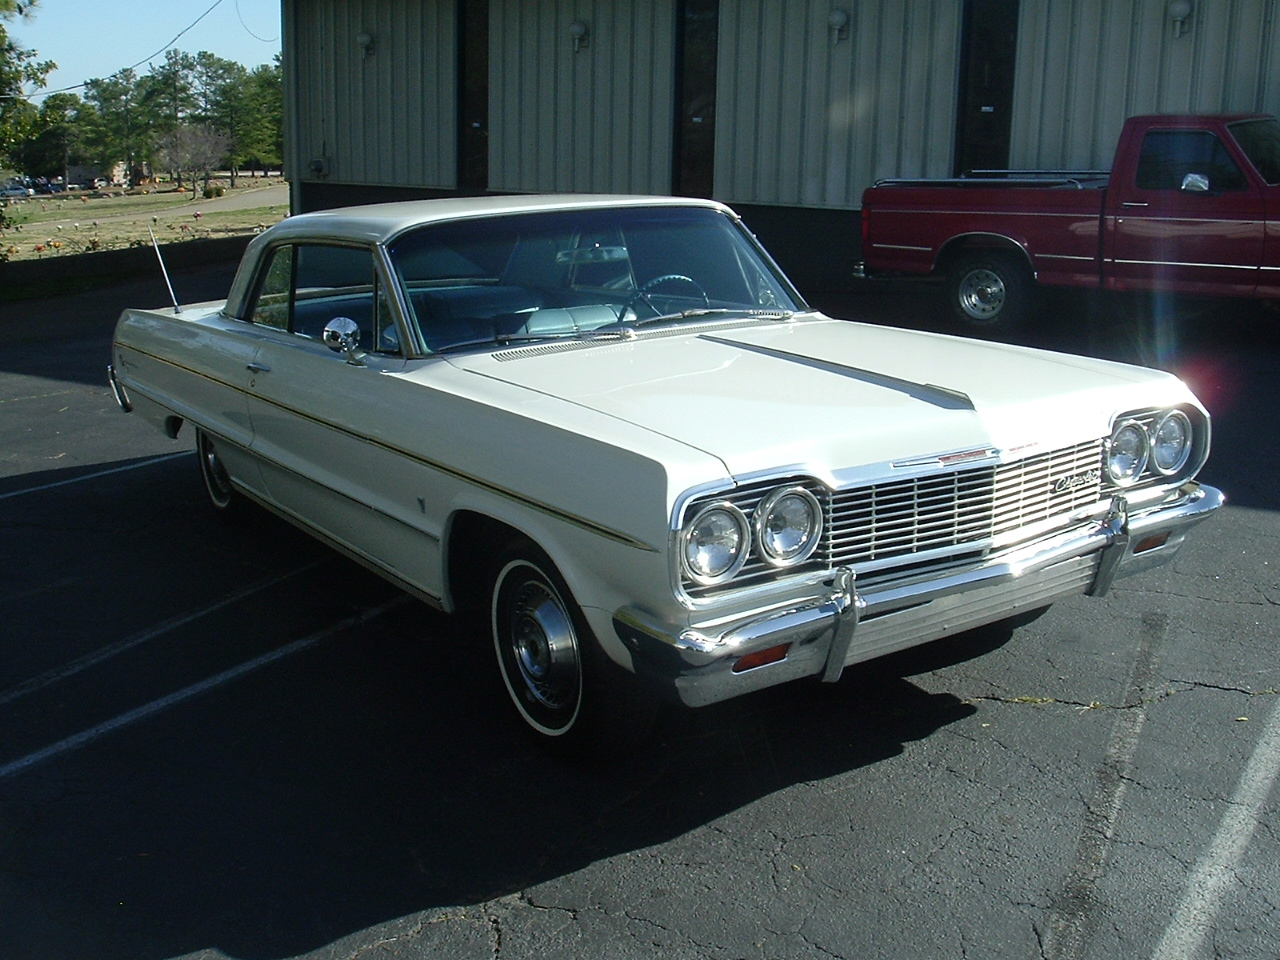 1964 Impala Two Door Hardtop White (7)